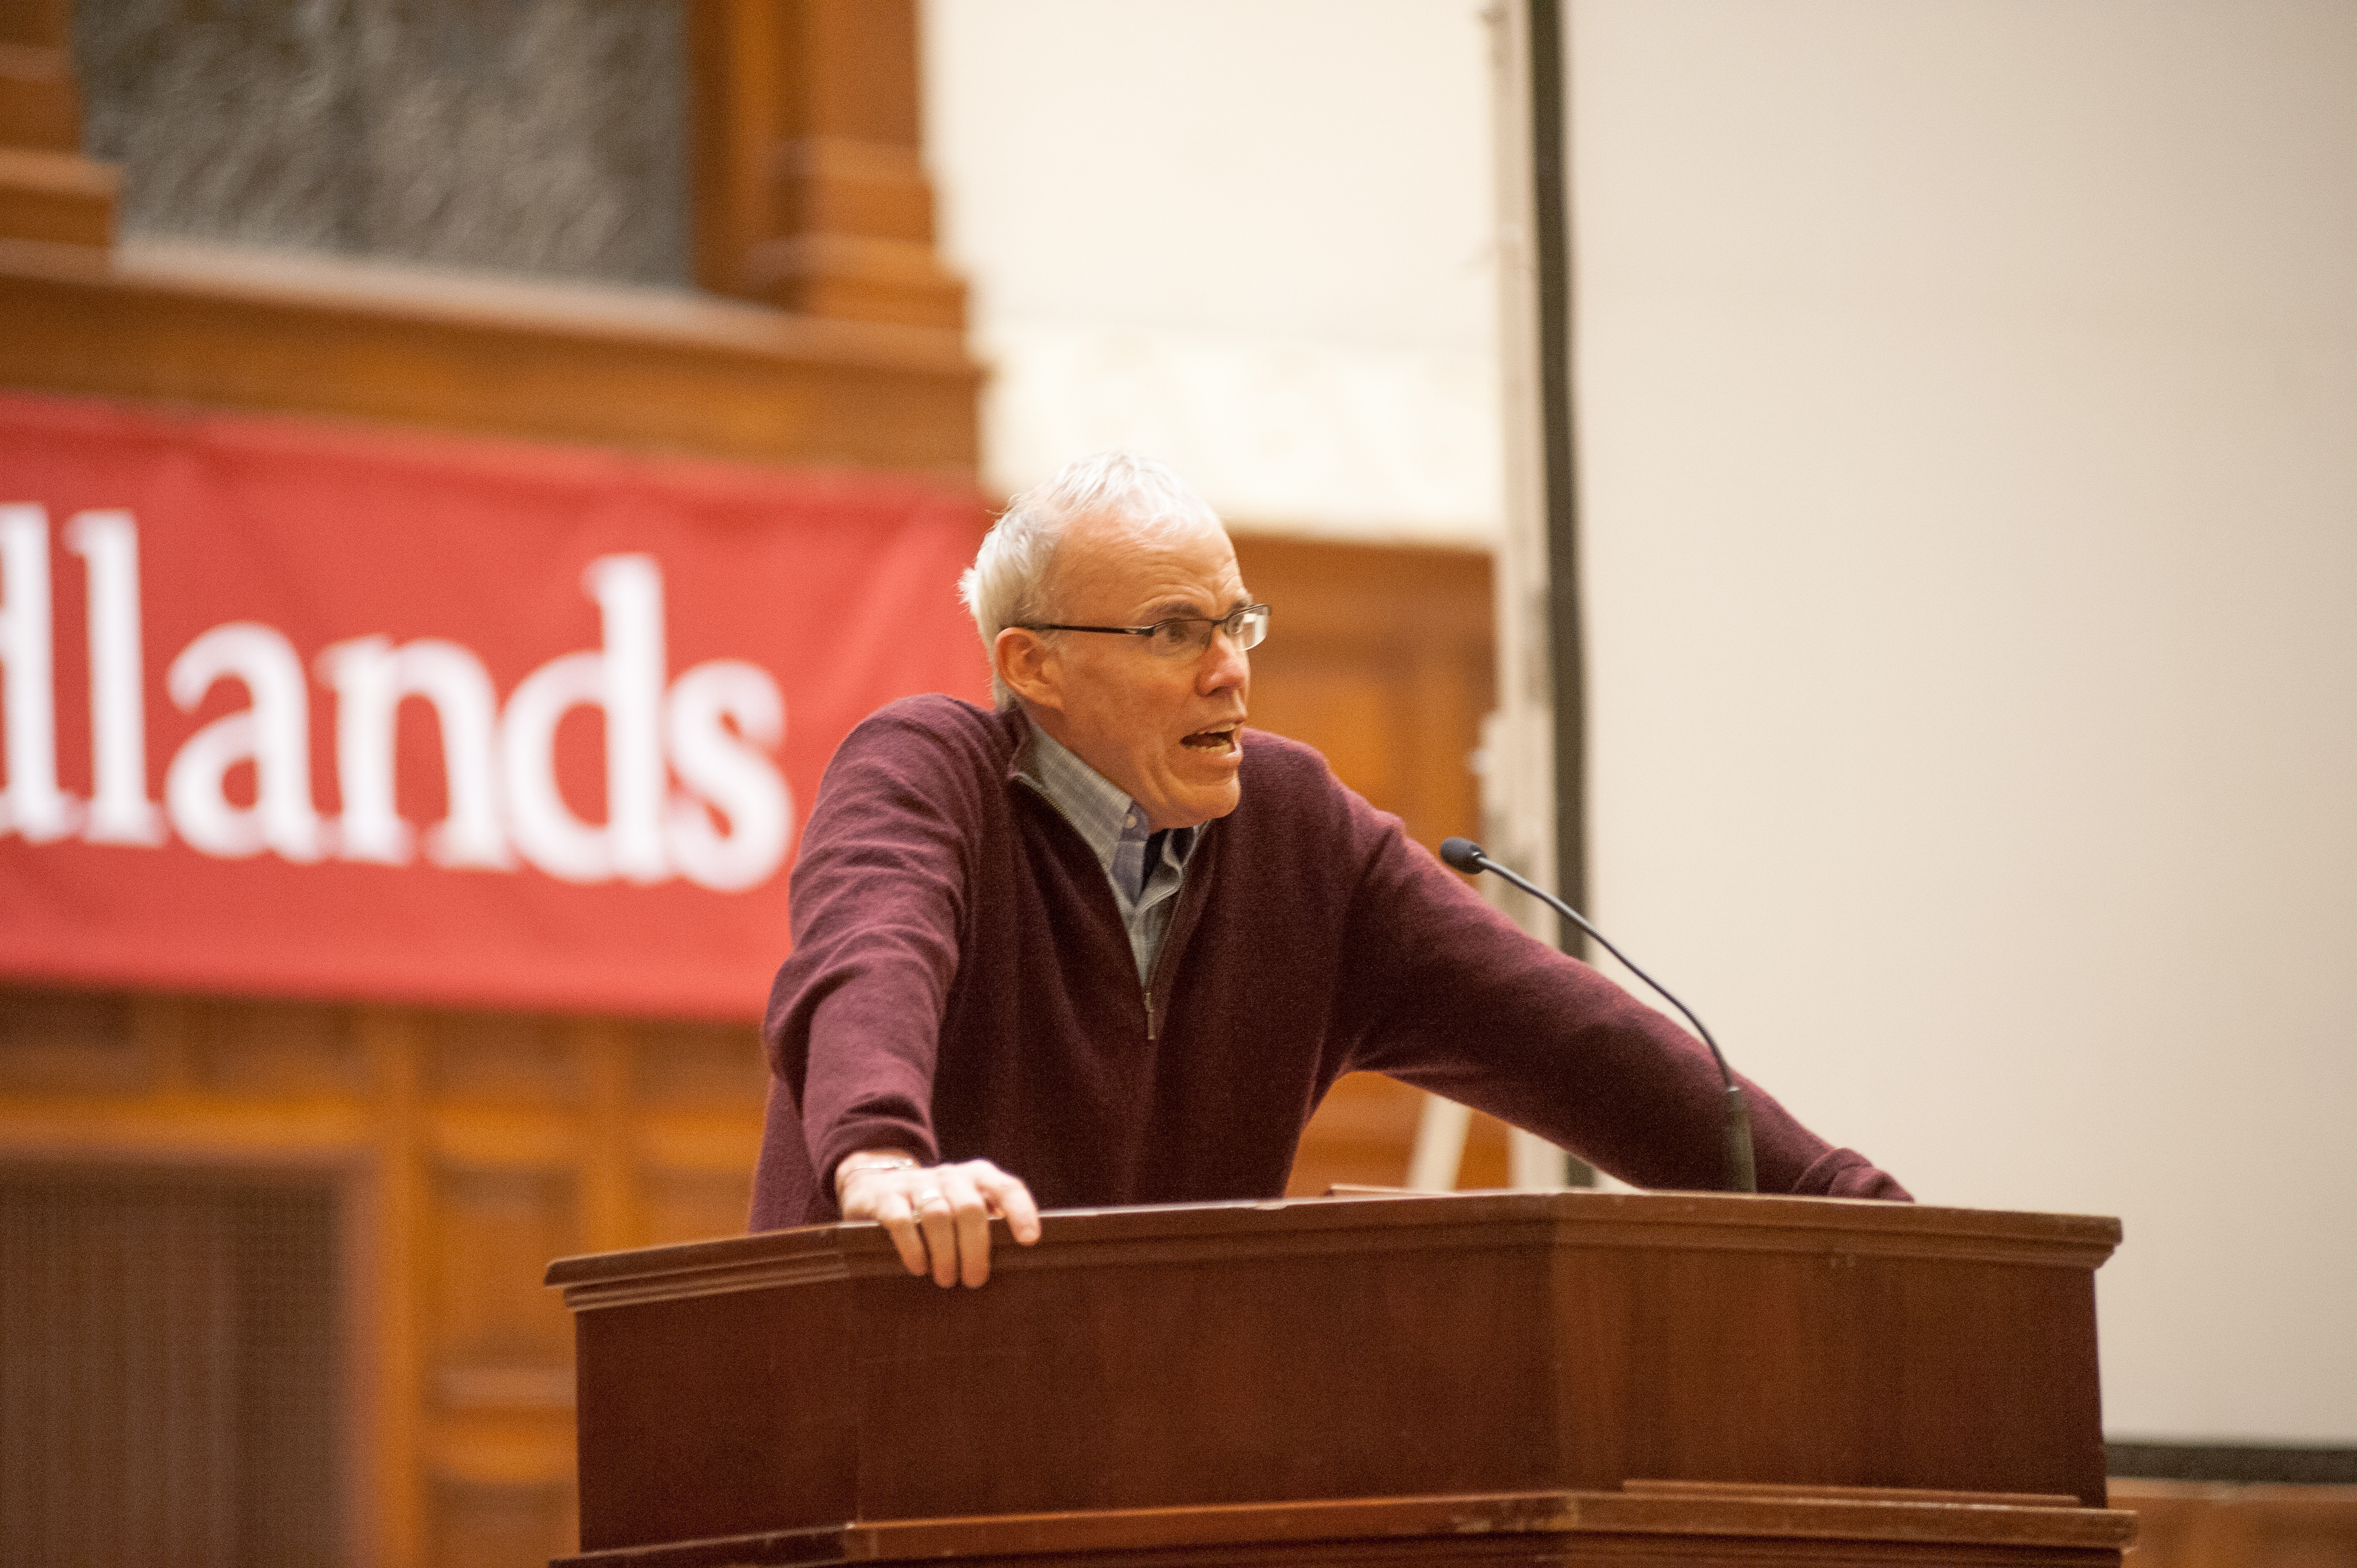 There is Nothing Radical about Environmentalism: Bill McKibben Educates Redlands on Climate Change